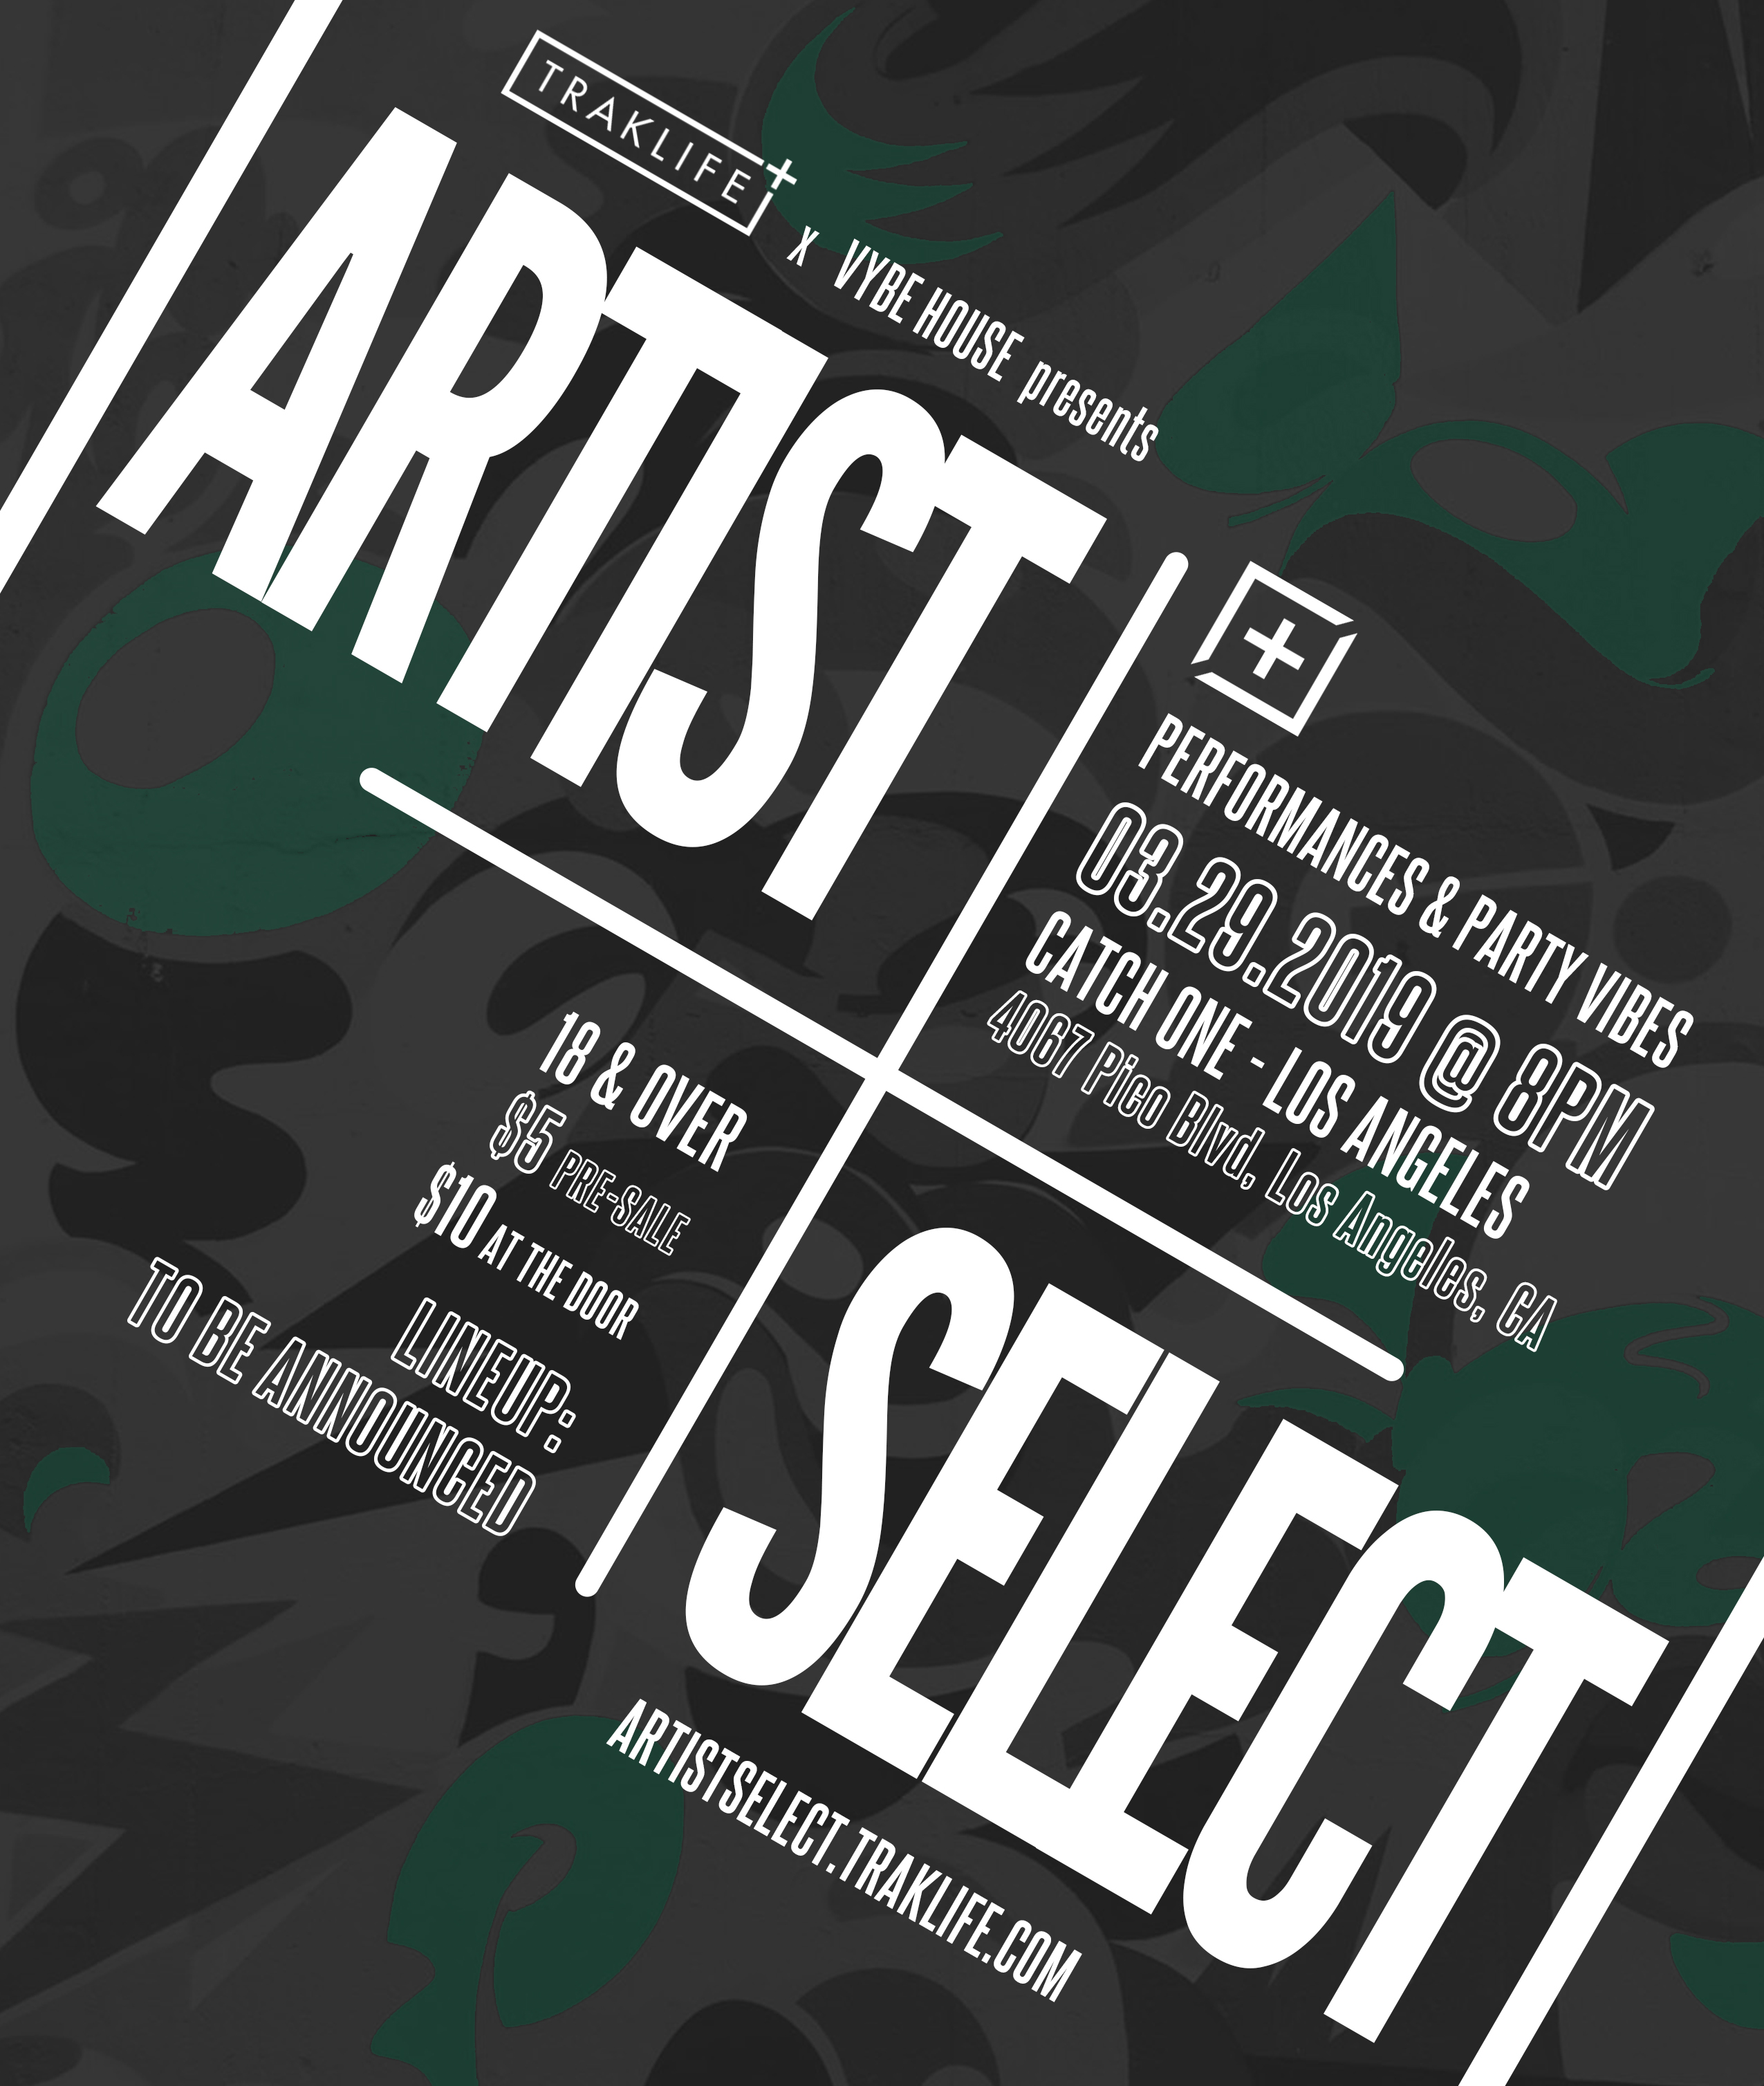 Artist Select presented by Traklife x Vybe House